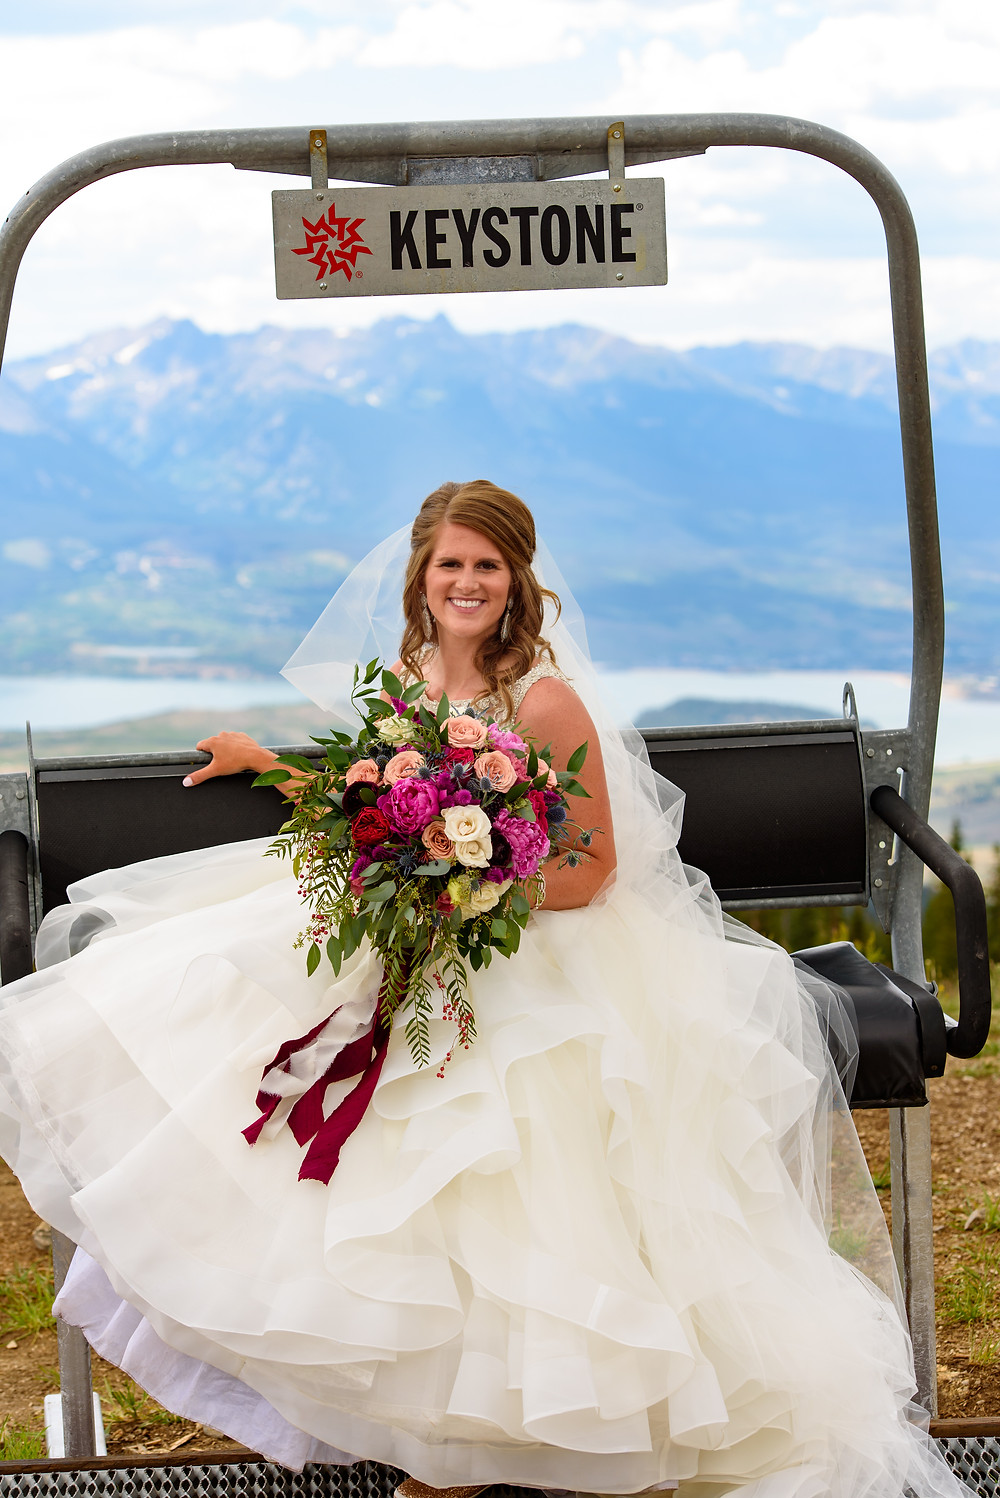 Keystone Wedding Planner - Timber Ridge Wedding - Bride